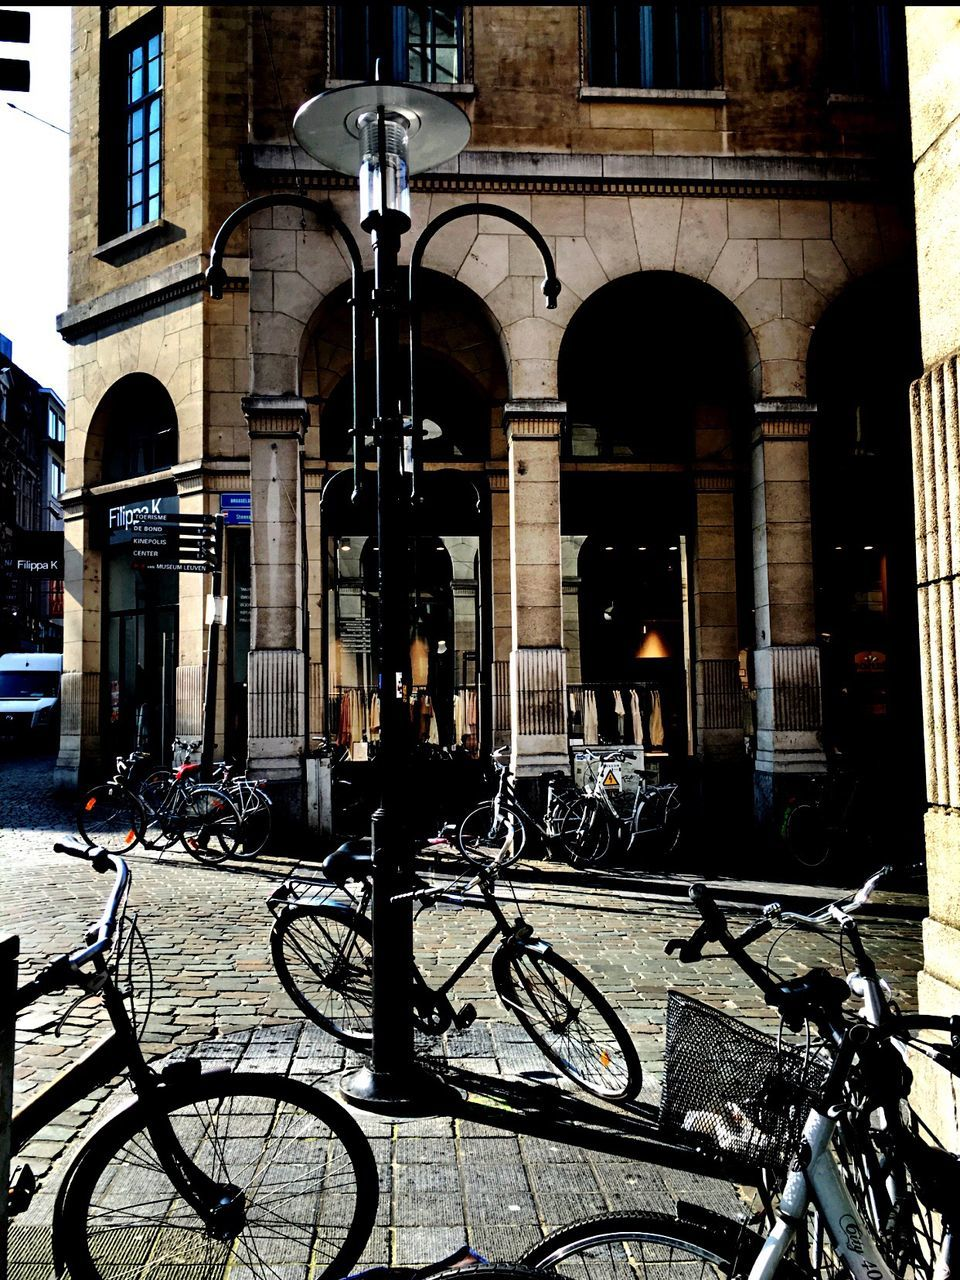 bicycle, architecture, building exterior, built structure, transportation, arch, architectural column, mode of transport, land vehicle, outdoors, stationary, city, day, bicycle rack, no people